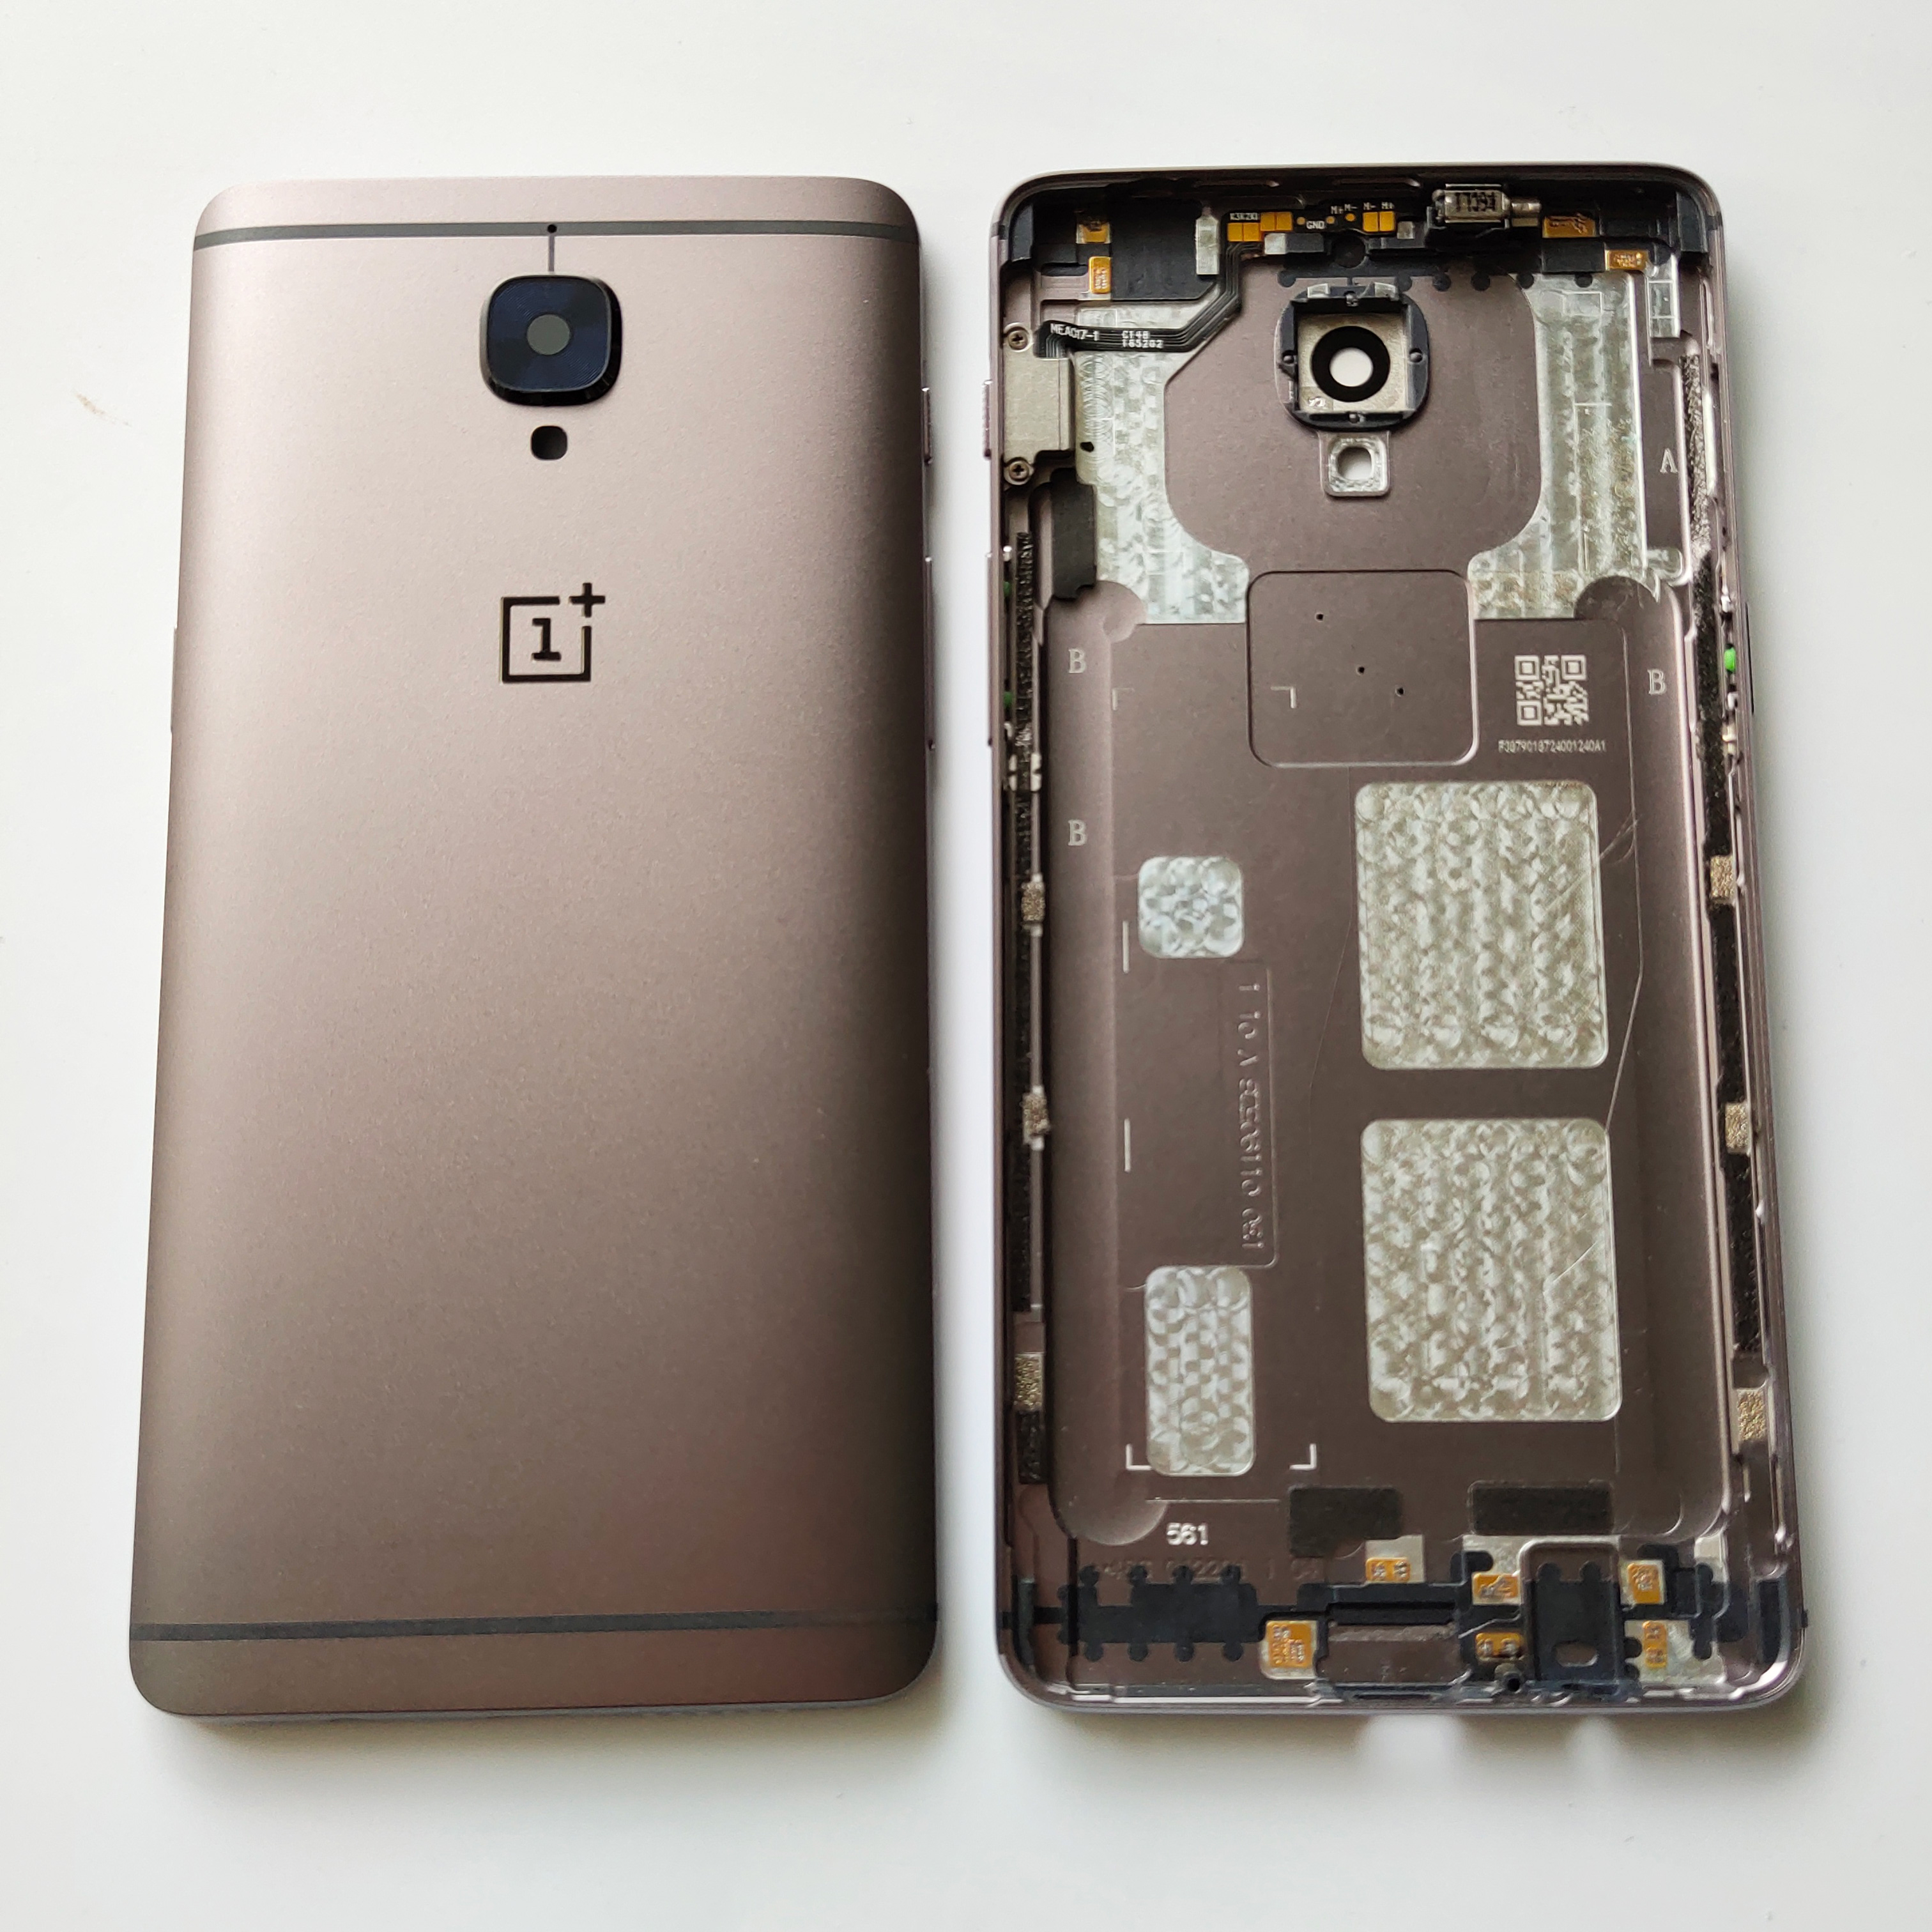 Cover Door-Housing-Case Oneplus A3010 Back-Battery Rear-Glass-Parts Gray for 3/A3000/A3003